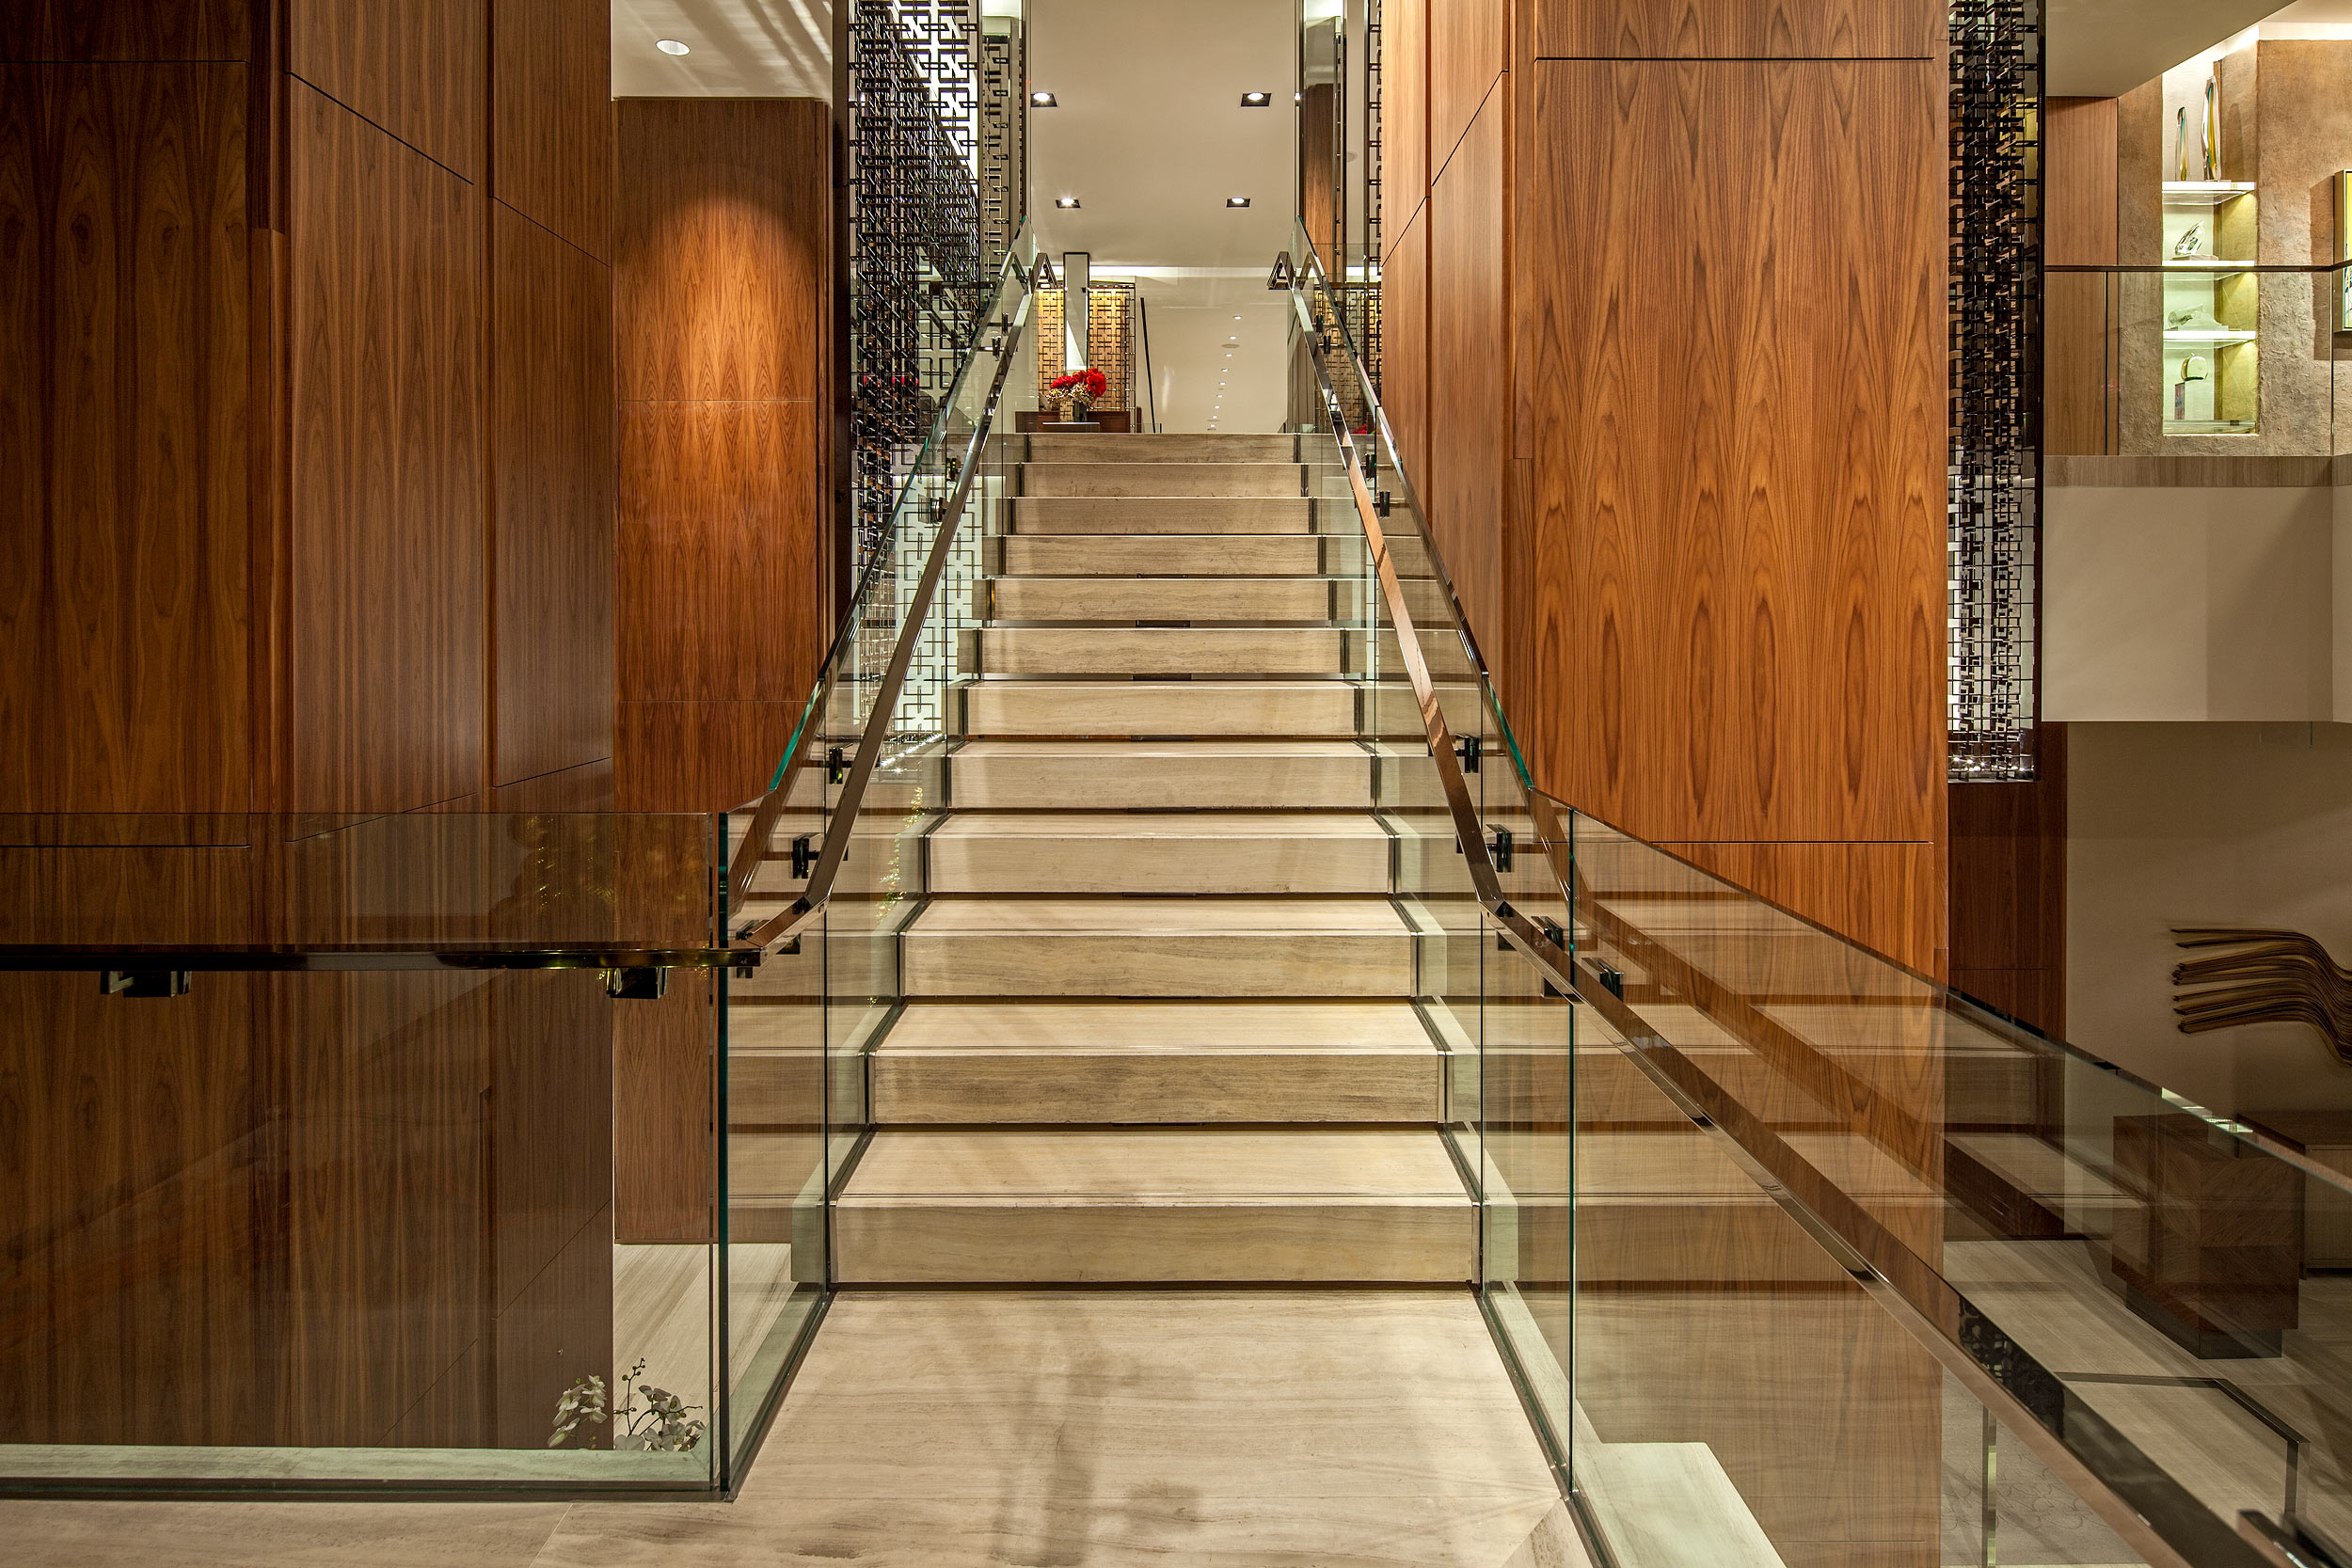 Toronto Four Seasons Hotel, stairs to Cafe Boulud Bistro